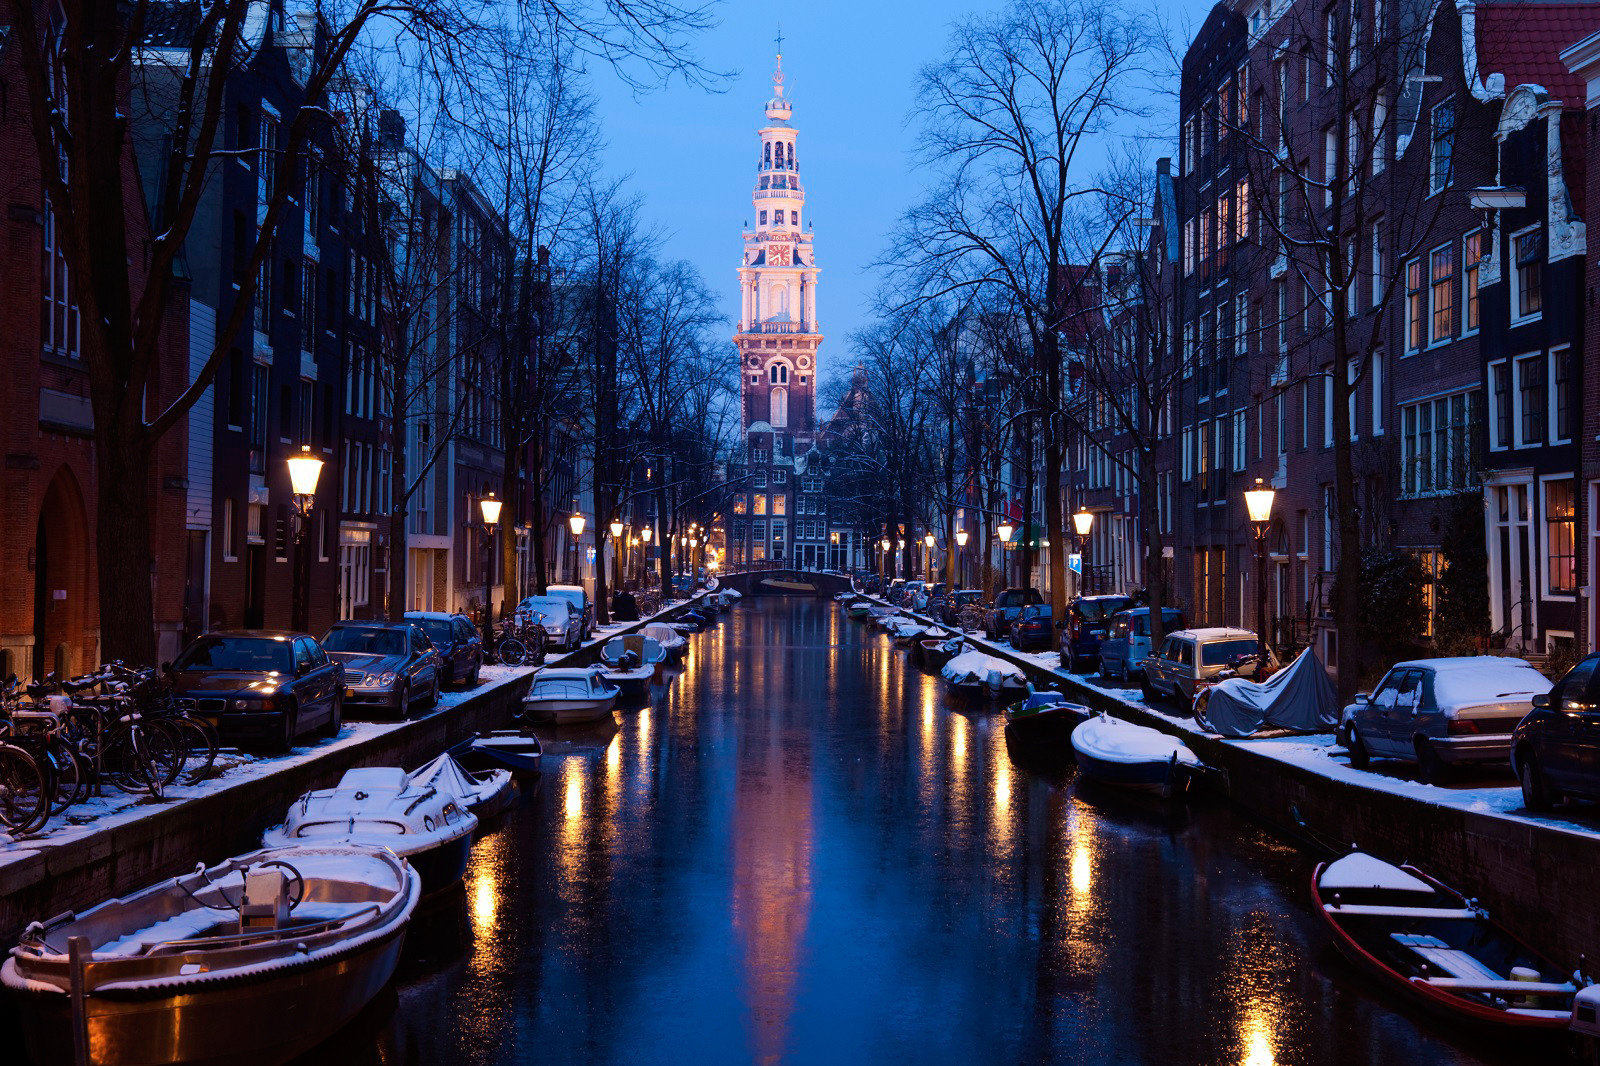 water Boat Canal night filled City waterway cityscape evening Downtown metropolis dusk full lined